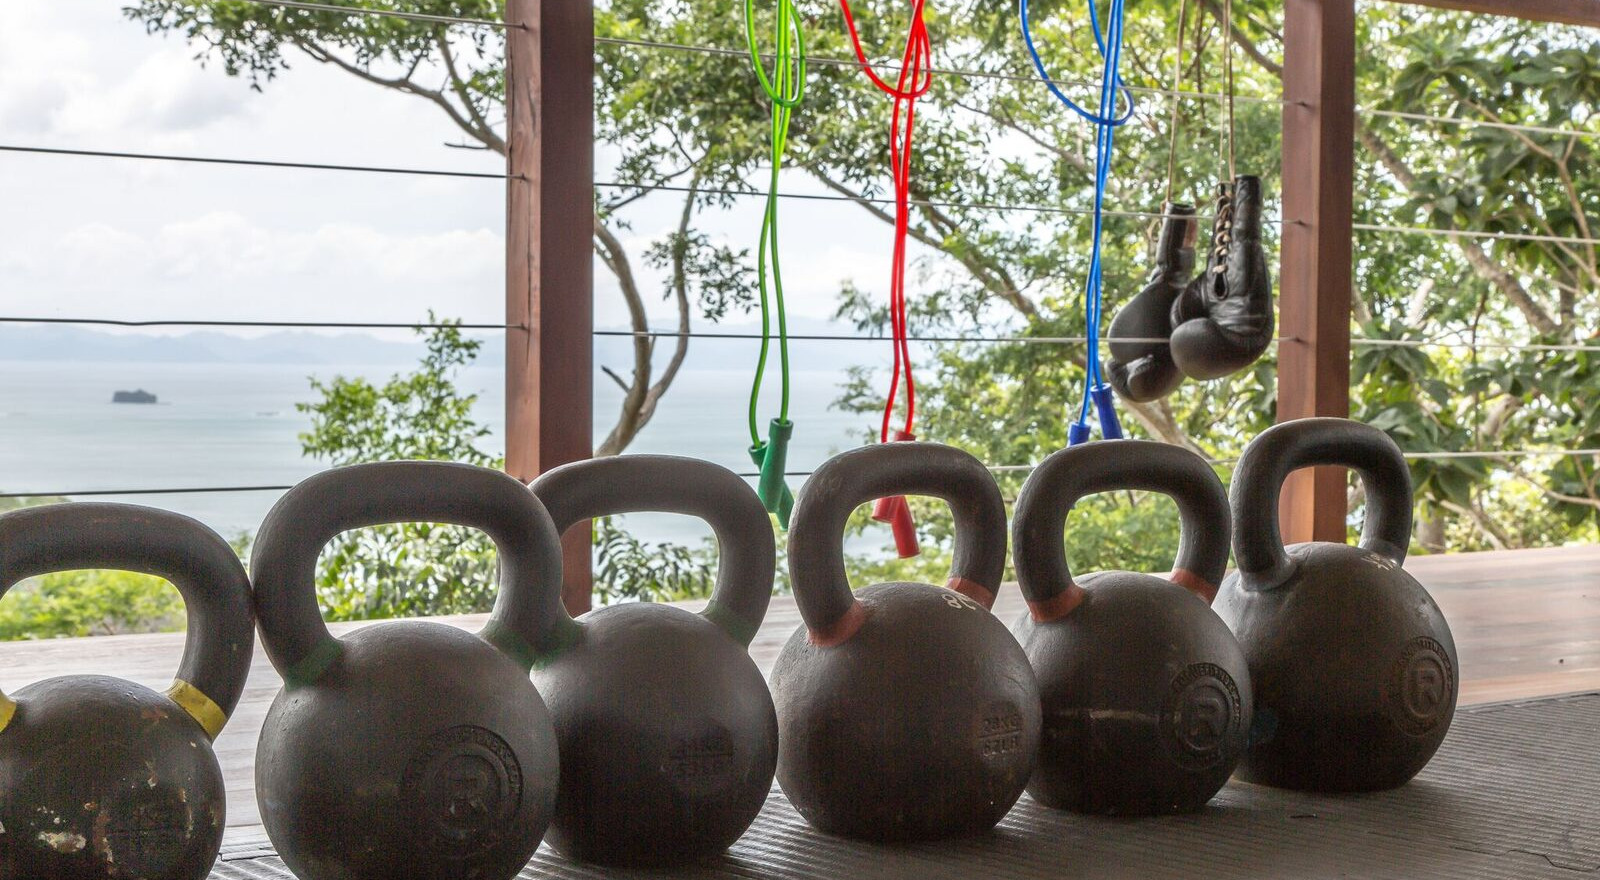 Verdad at Costa Dulce-KettleBells.jpeg